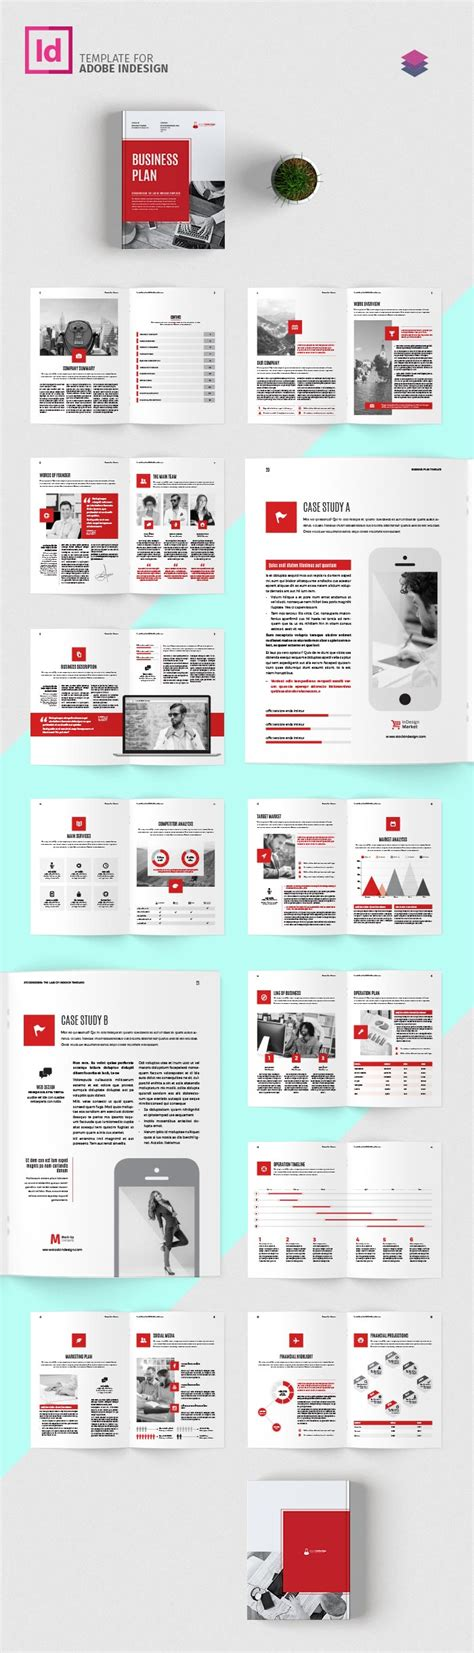 Business Plan Template Adobe Indesign Templates Indesign Business Templates Free